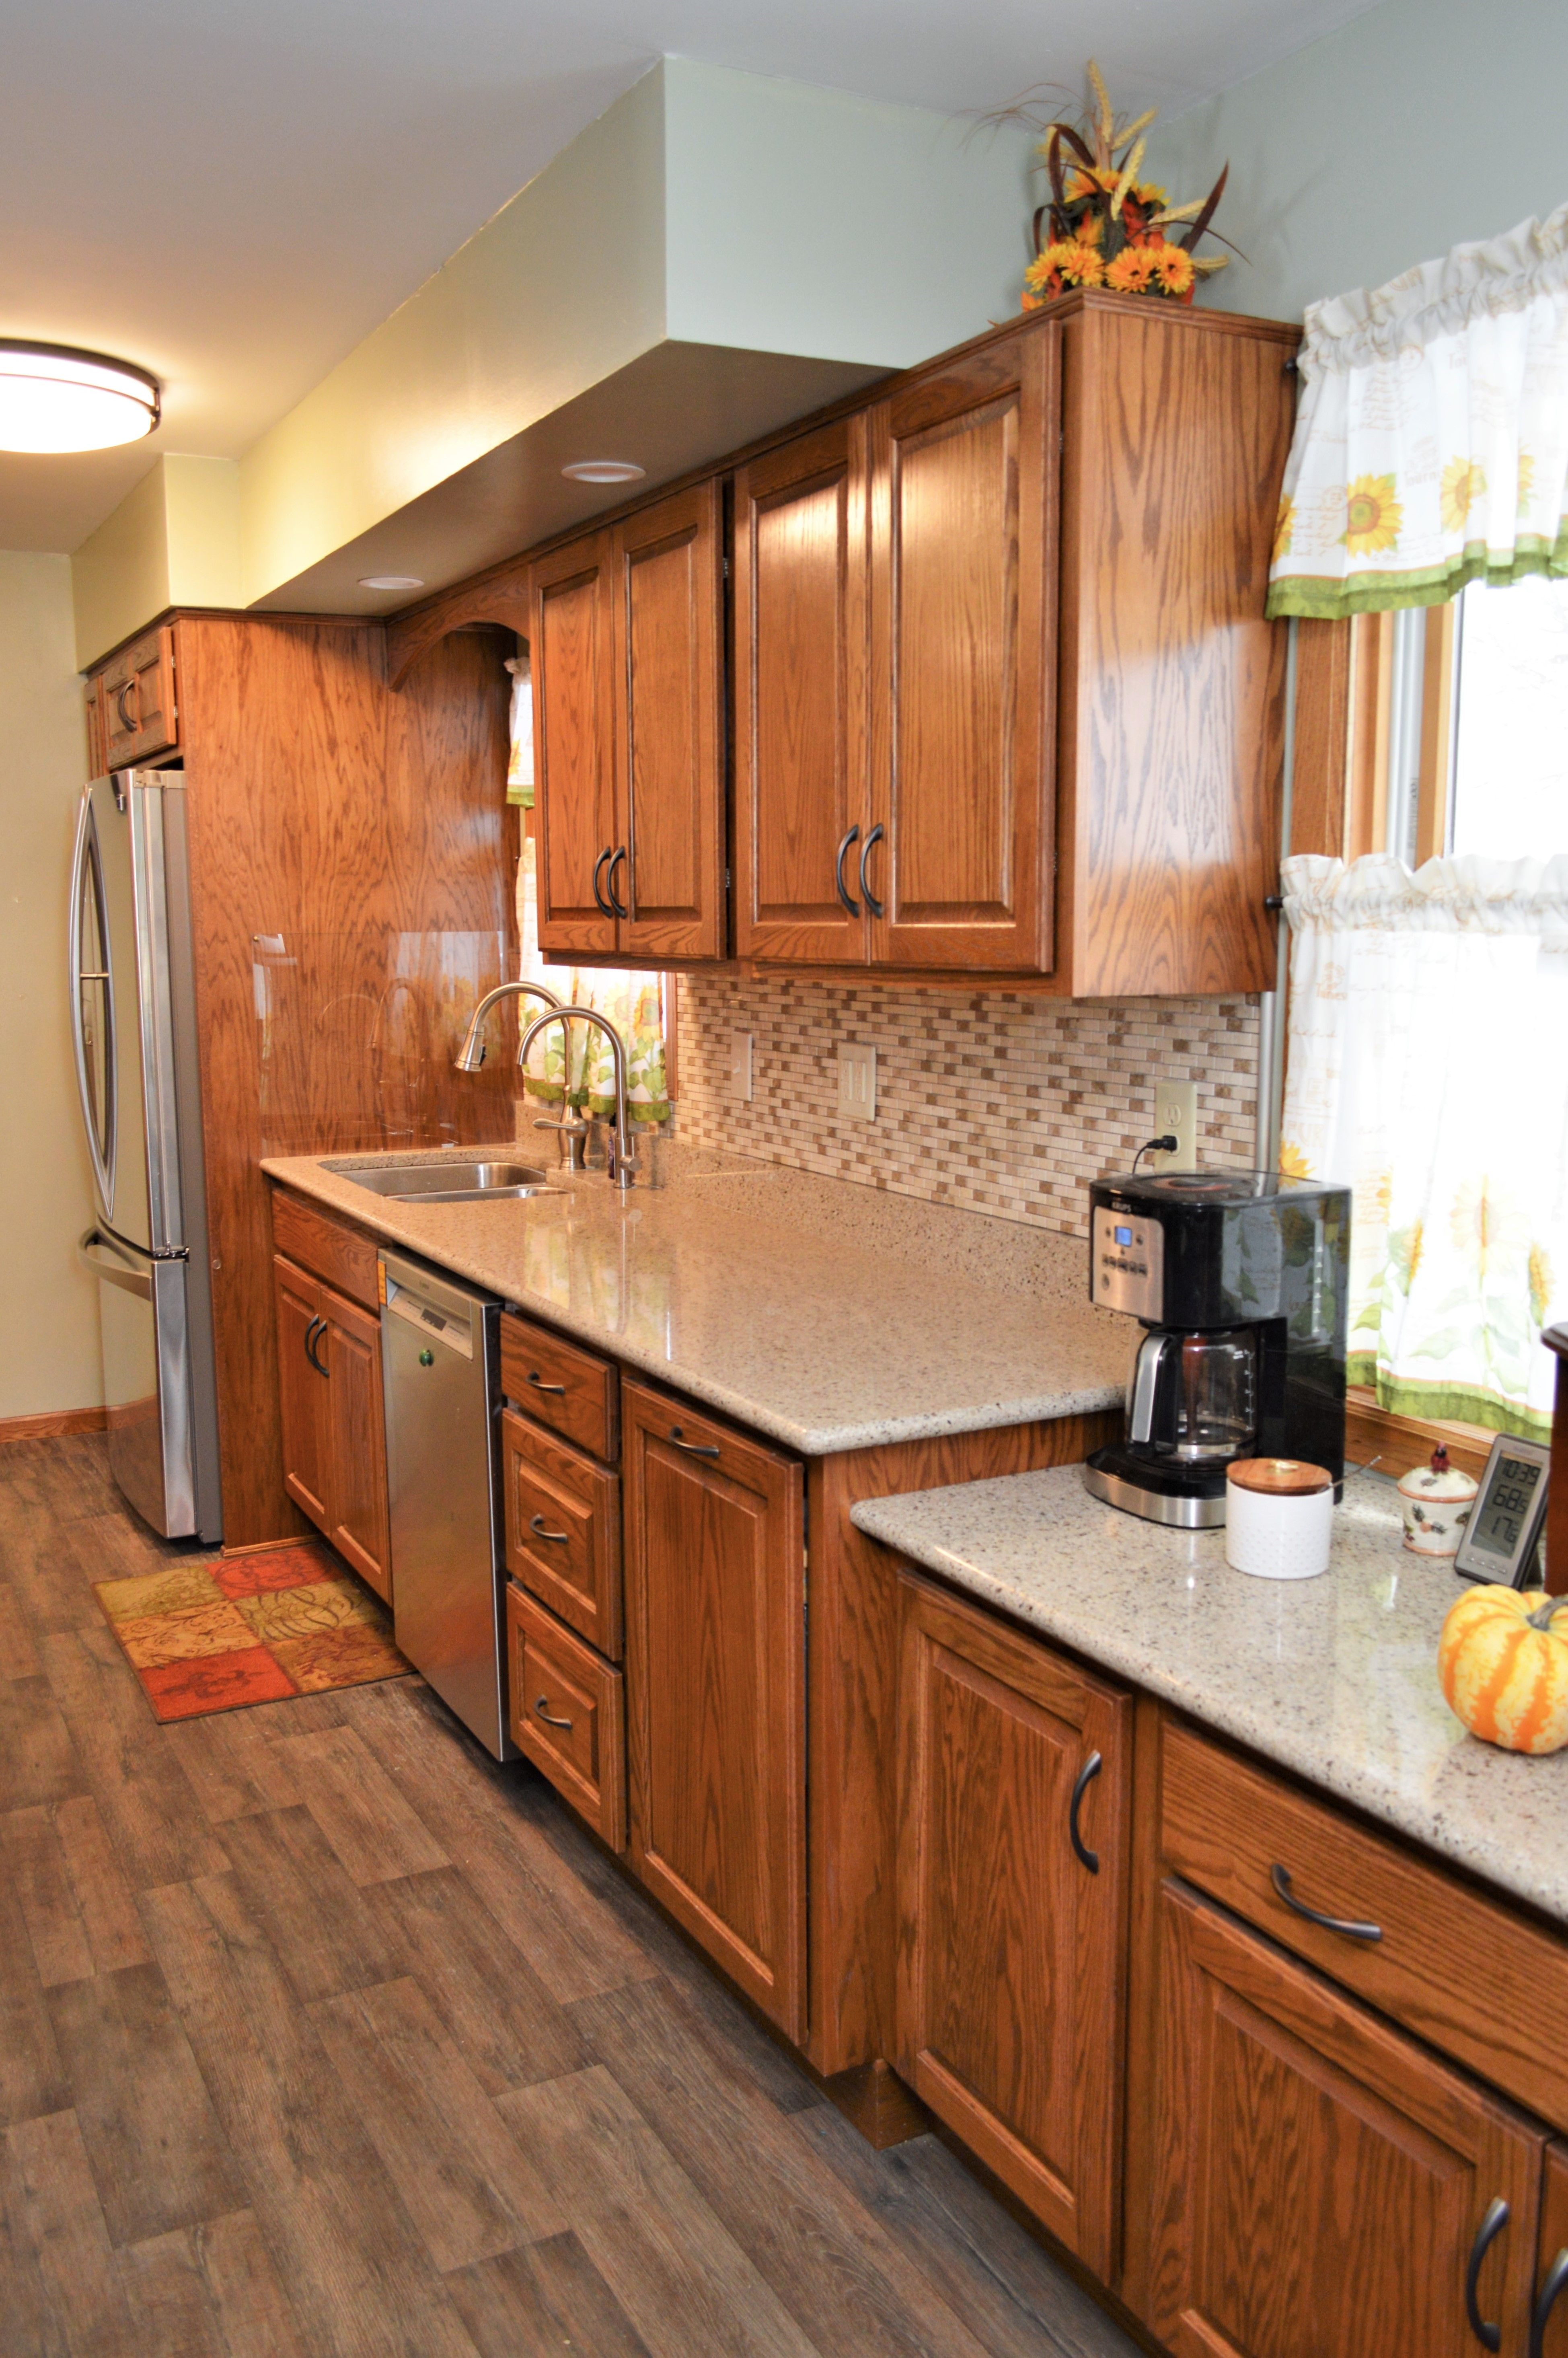 Bailey S Cabinets Haas Signature Collection Oak Autumn Finish Federal Square Door Style Oak Cabinets Cabinetry Kitchen